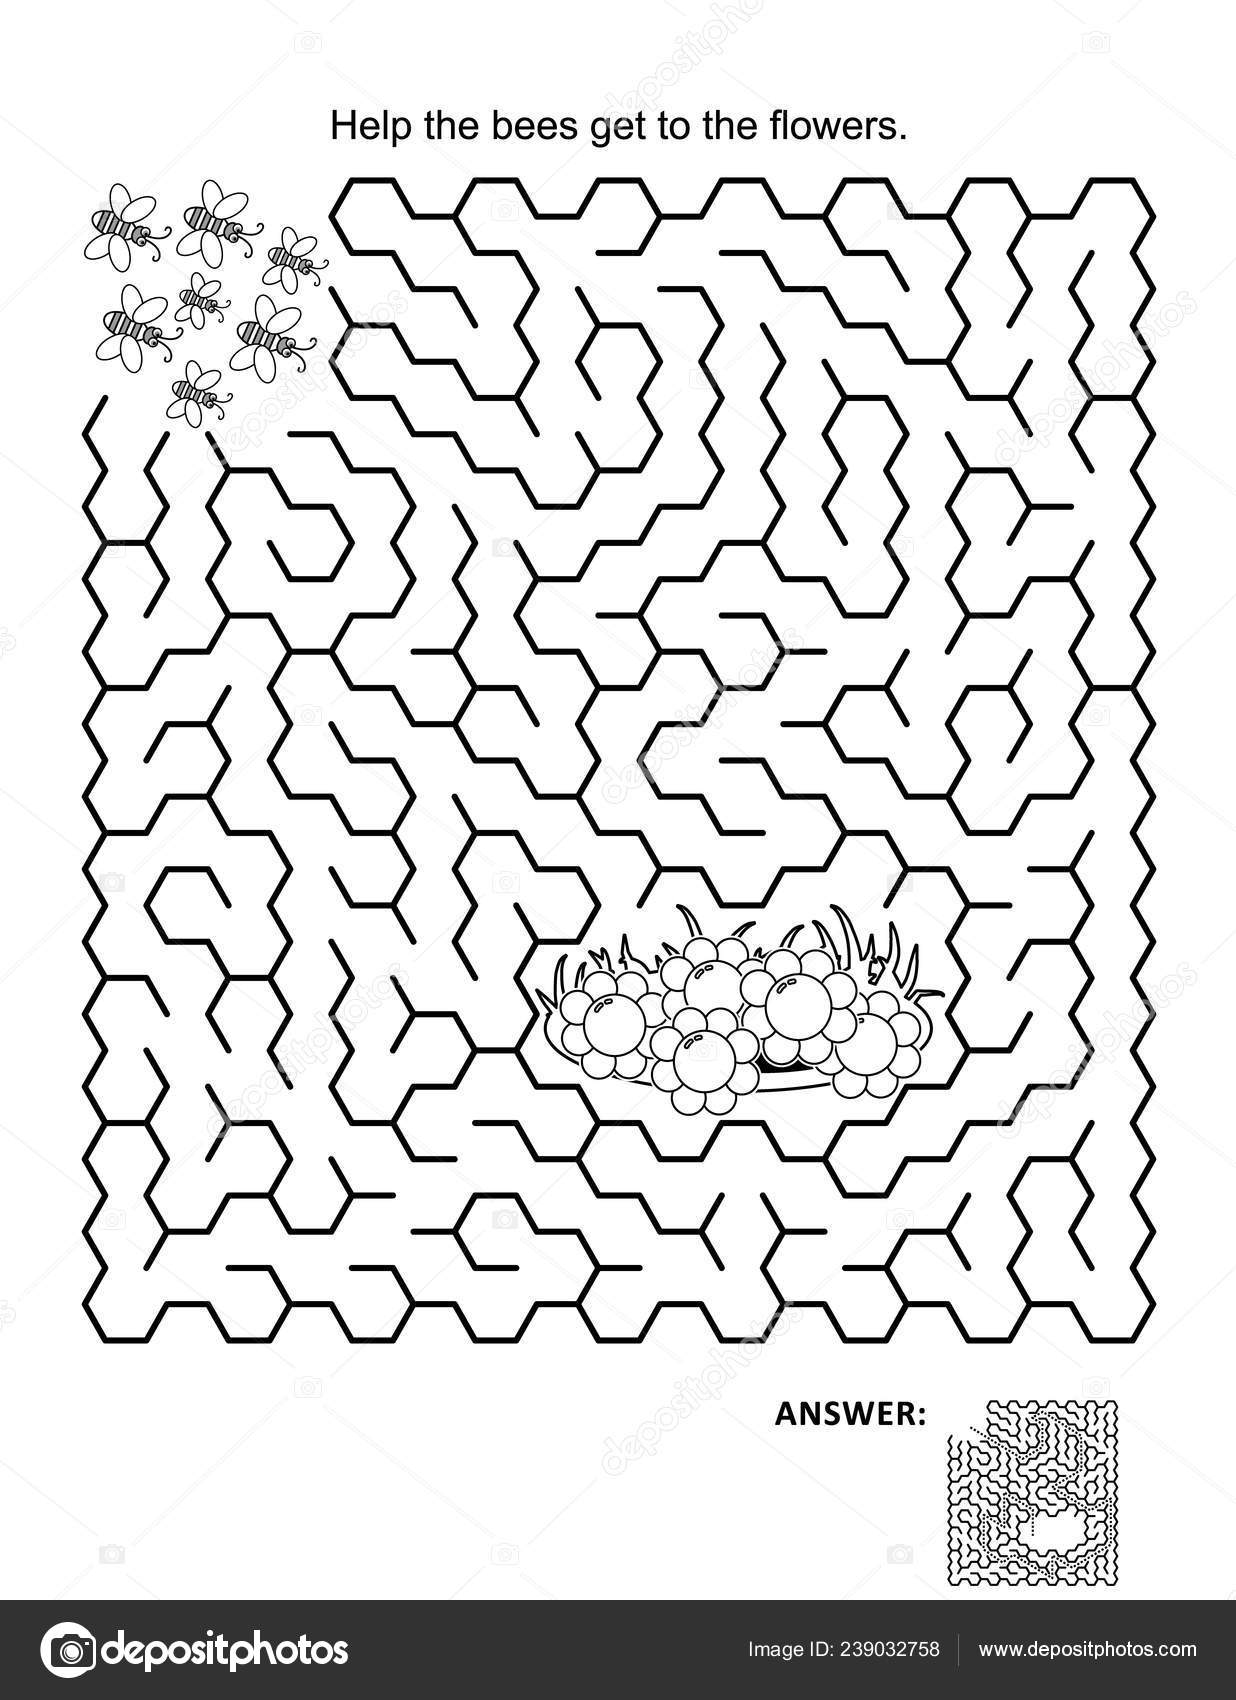 Maze game coloring page help bees get flowers answer included